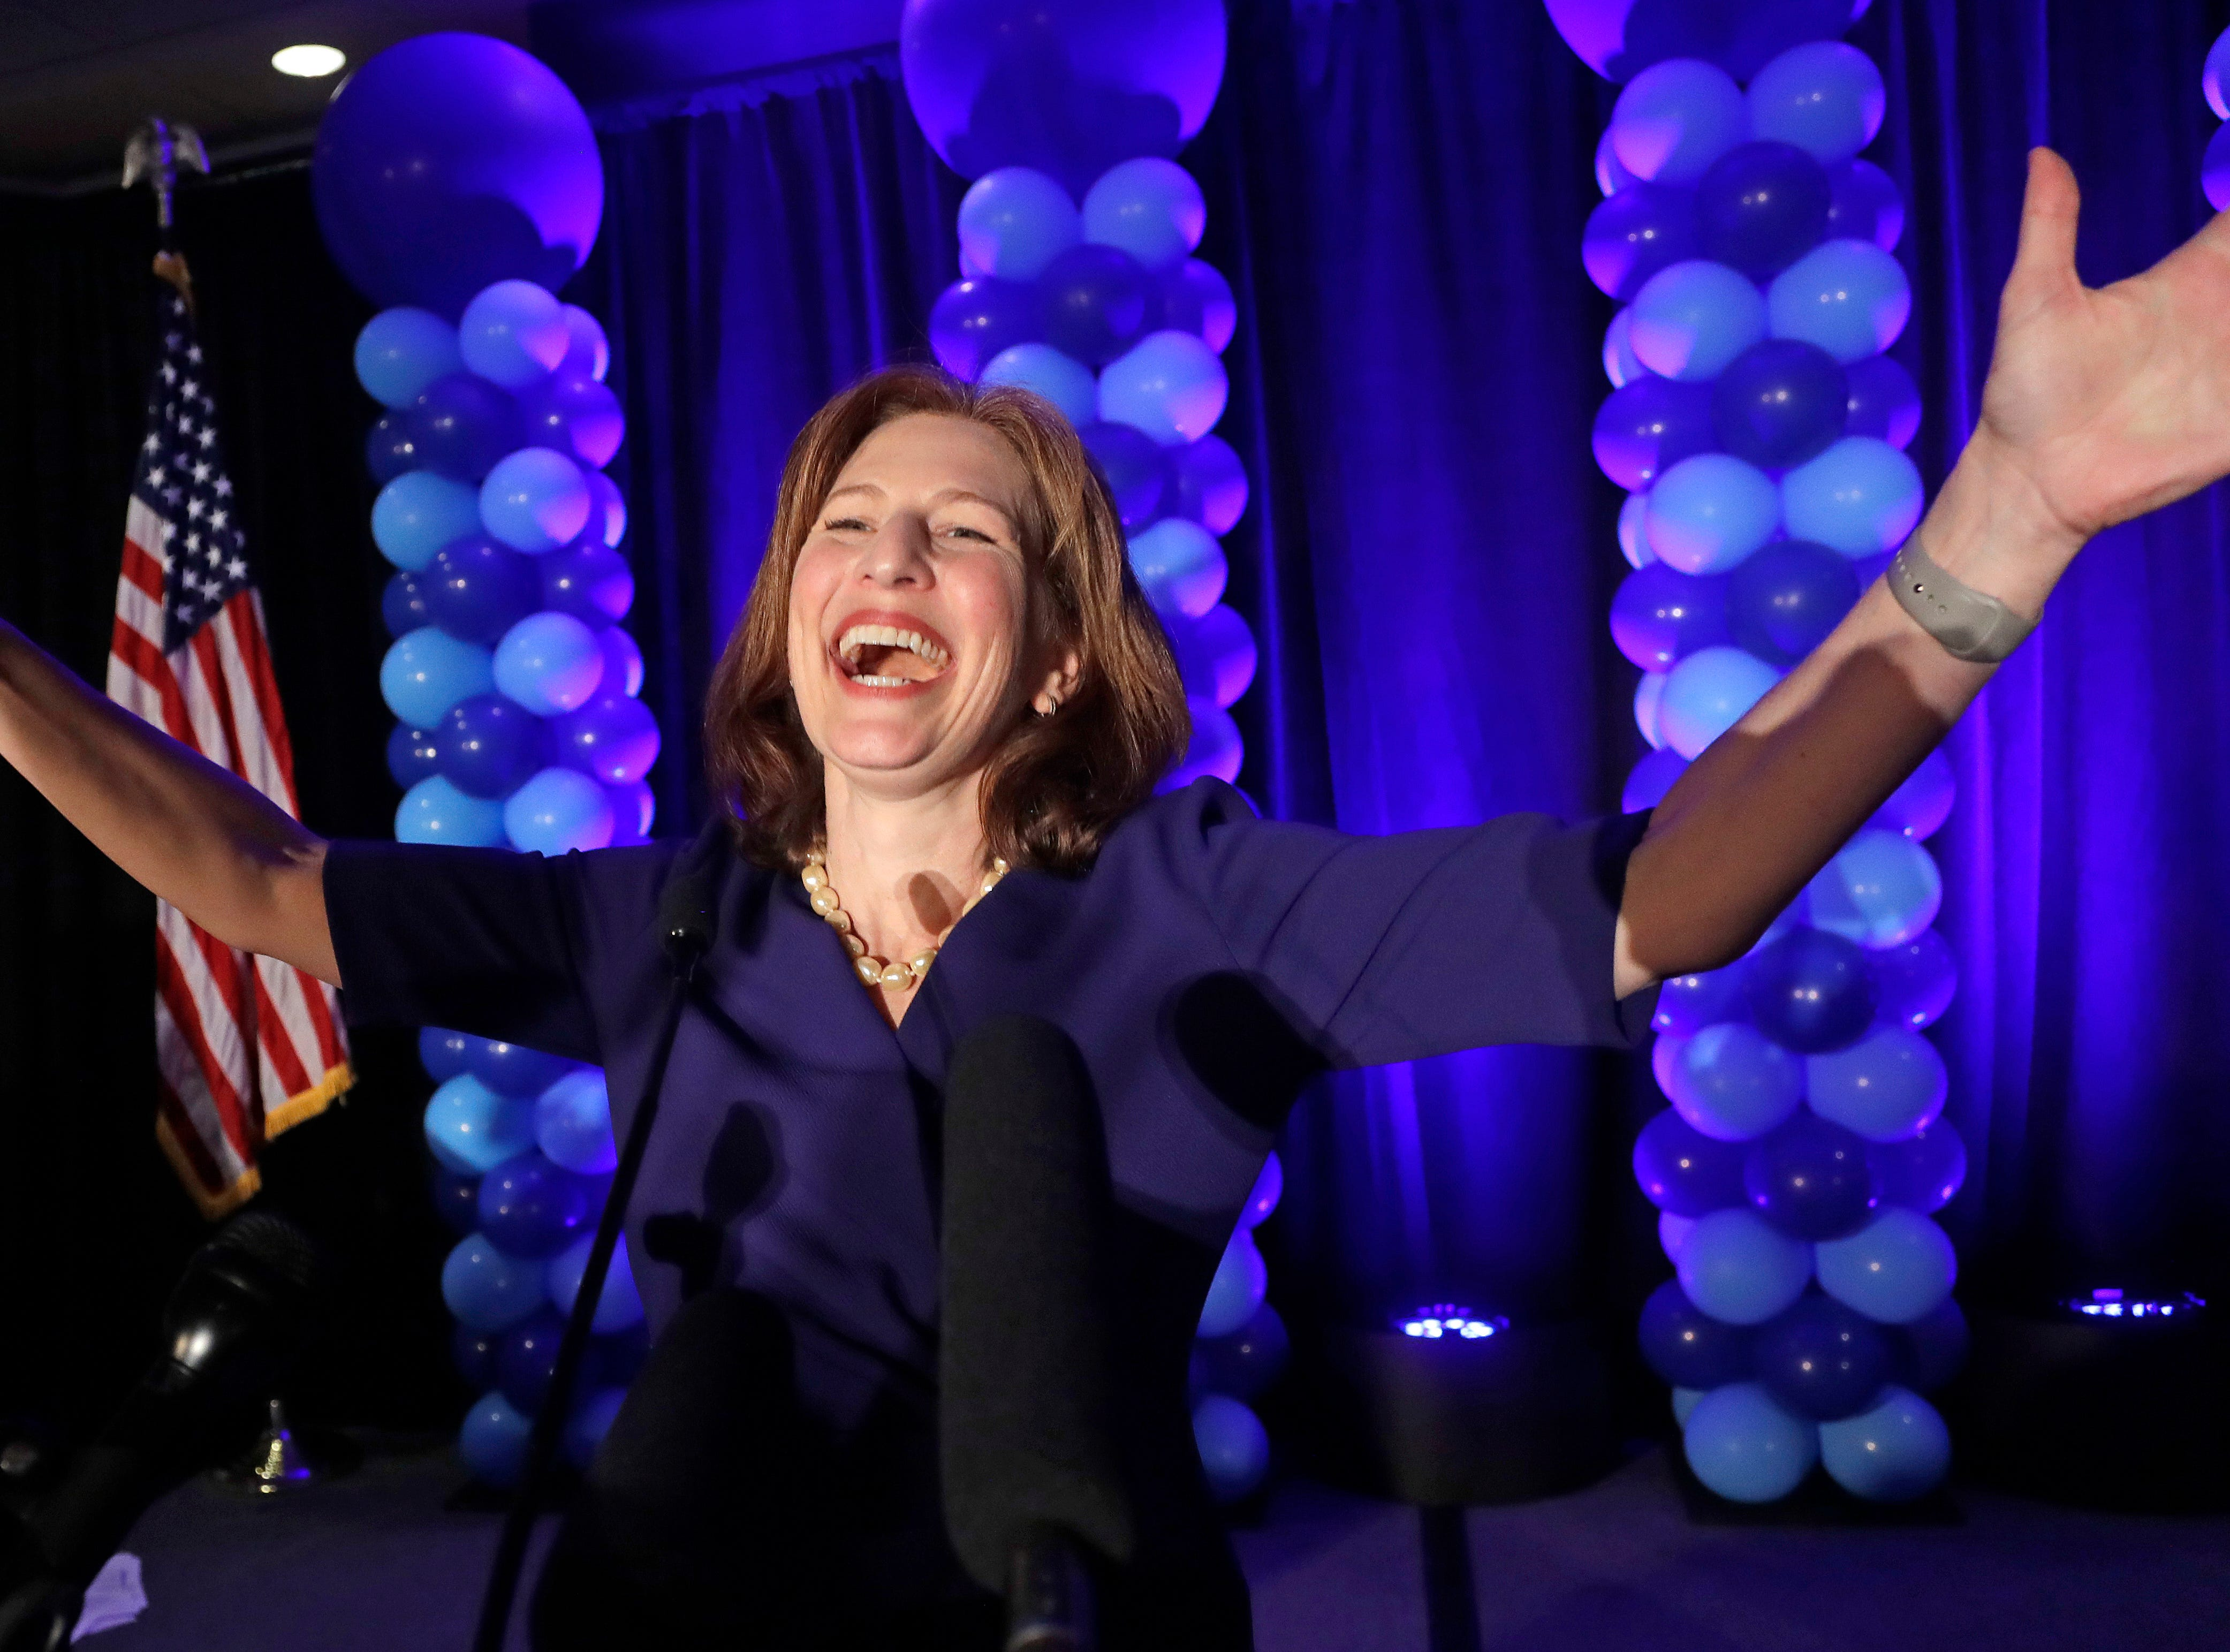 FILE - In this Nov. 6, 2018, file photo, Congressional candidate Kim Schrier addresses the crowd at an election night party for Democrats, in Bellevue, Wash. Schrier's victory in the 8th District was among the state's top news stories of 2018. (AP Photo/Elaine Thompson, File)